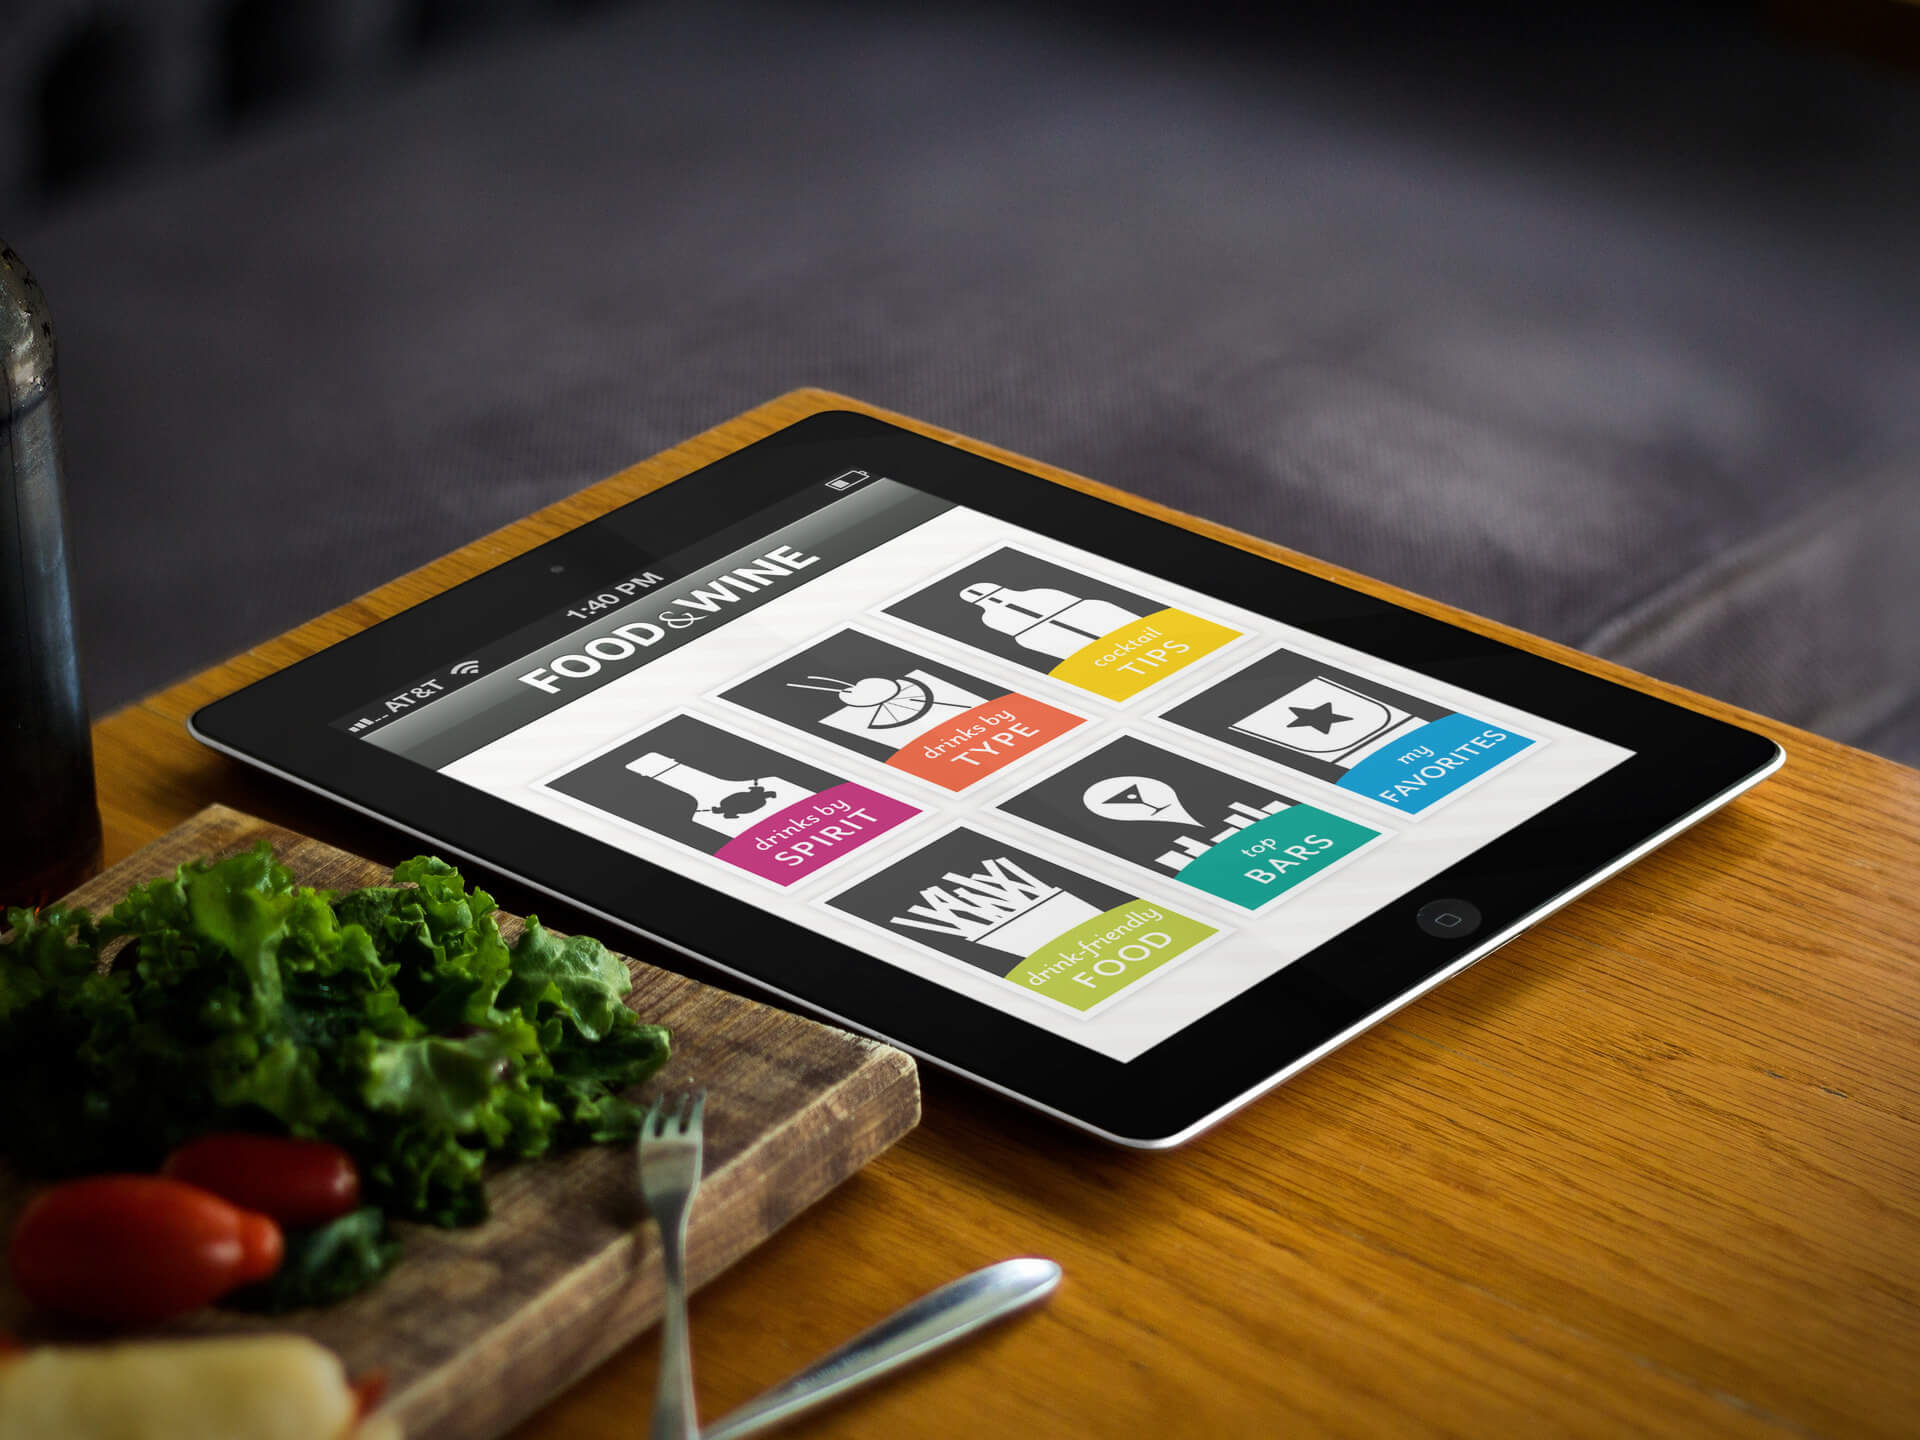 Black iPad Mockup in a Wooden Tabletop Next to a Cutting Board and Vegetables